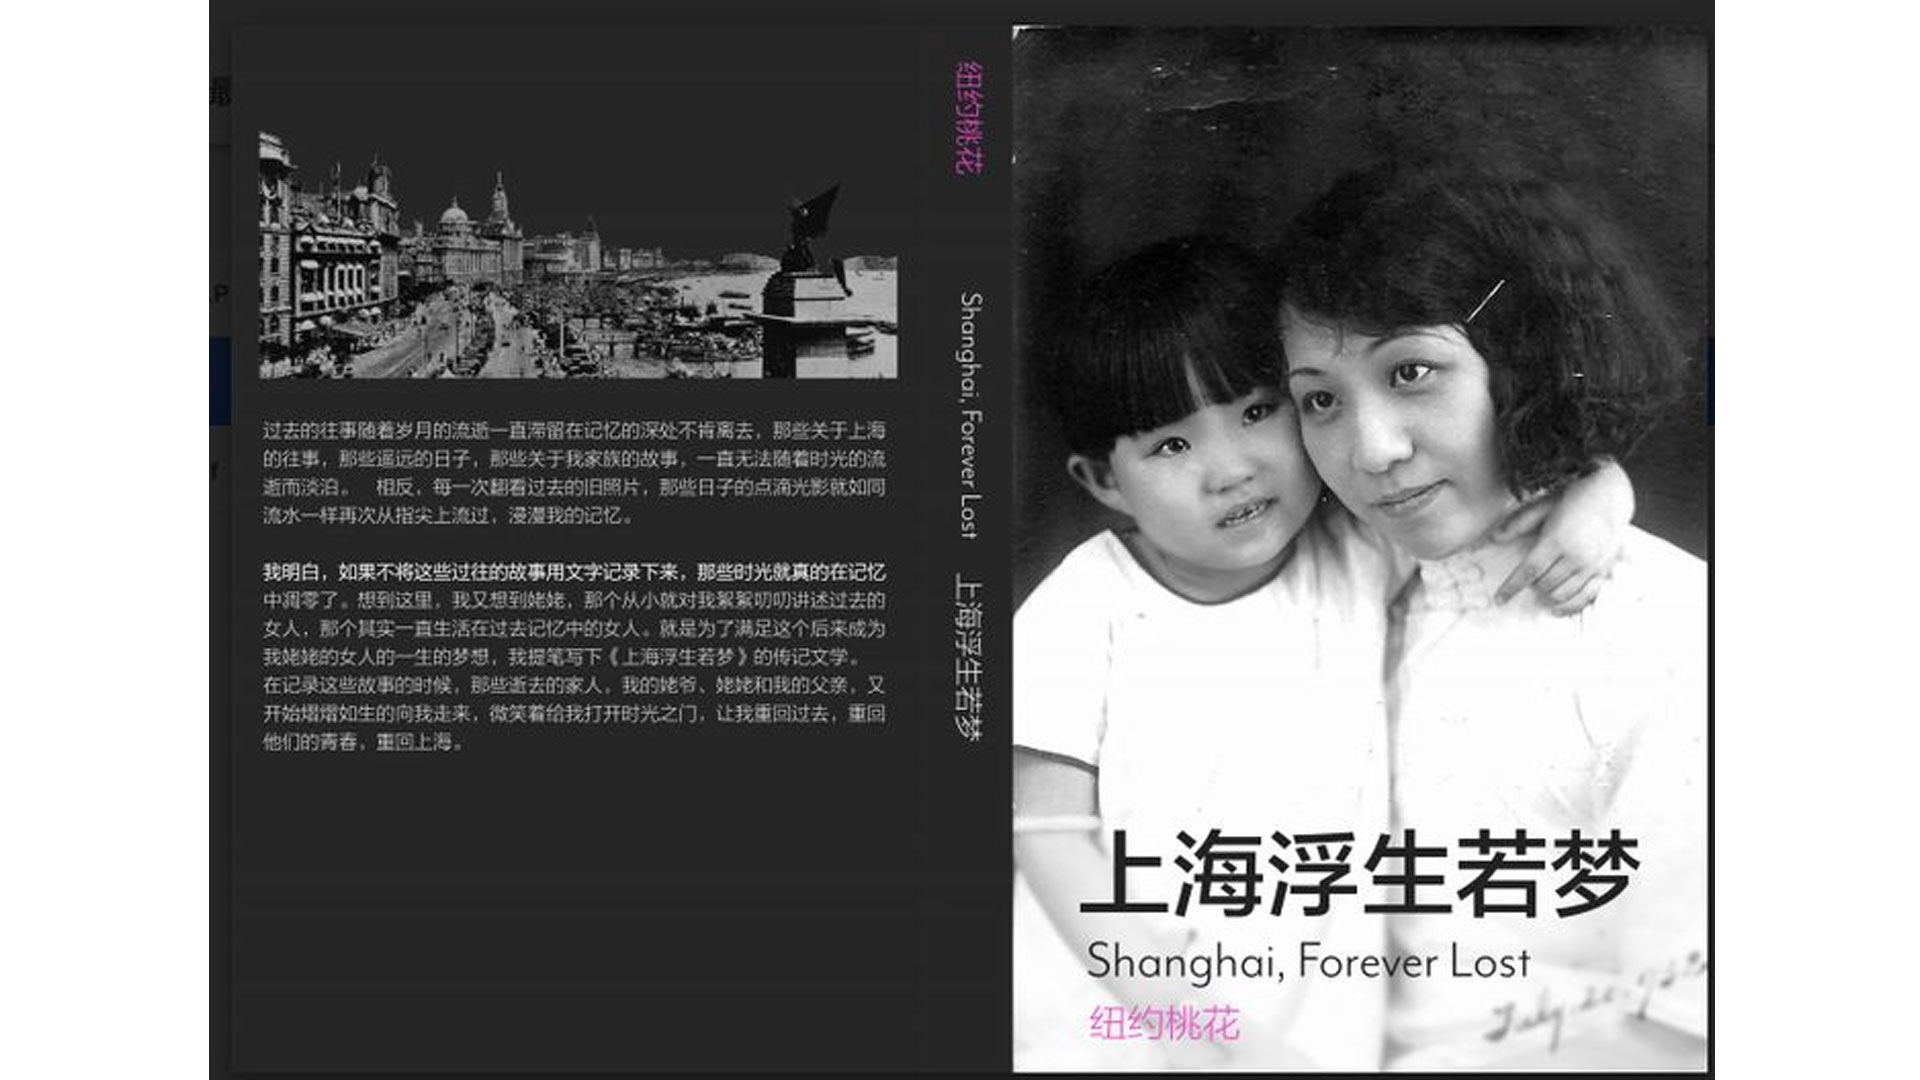 Shanghai, Forever Lost by Sonia Hu, click for videos & podcasts…